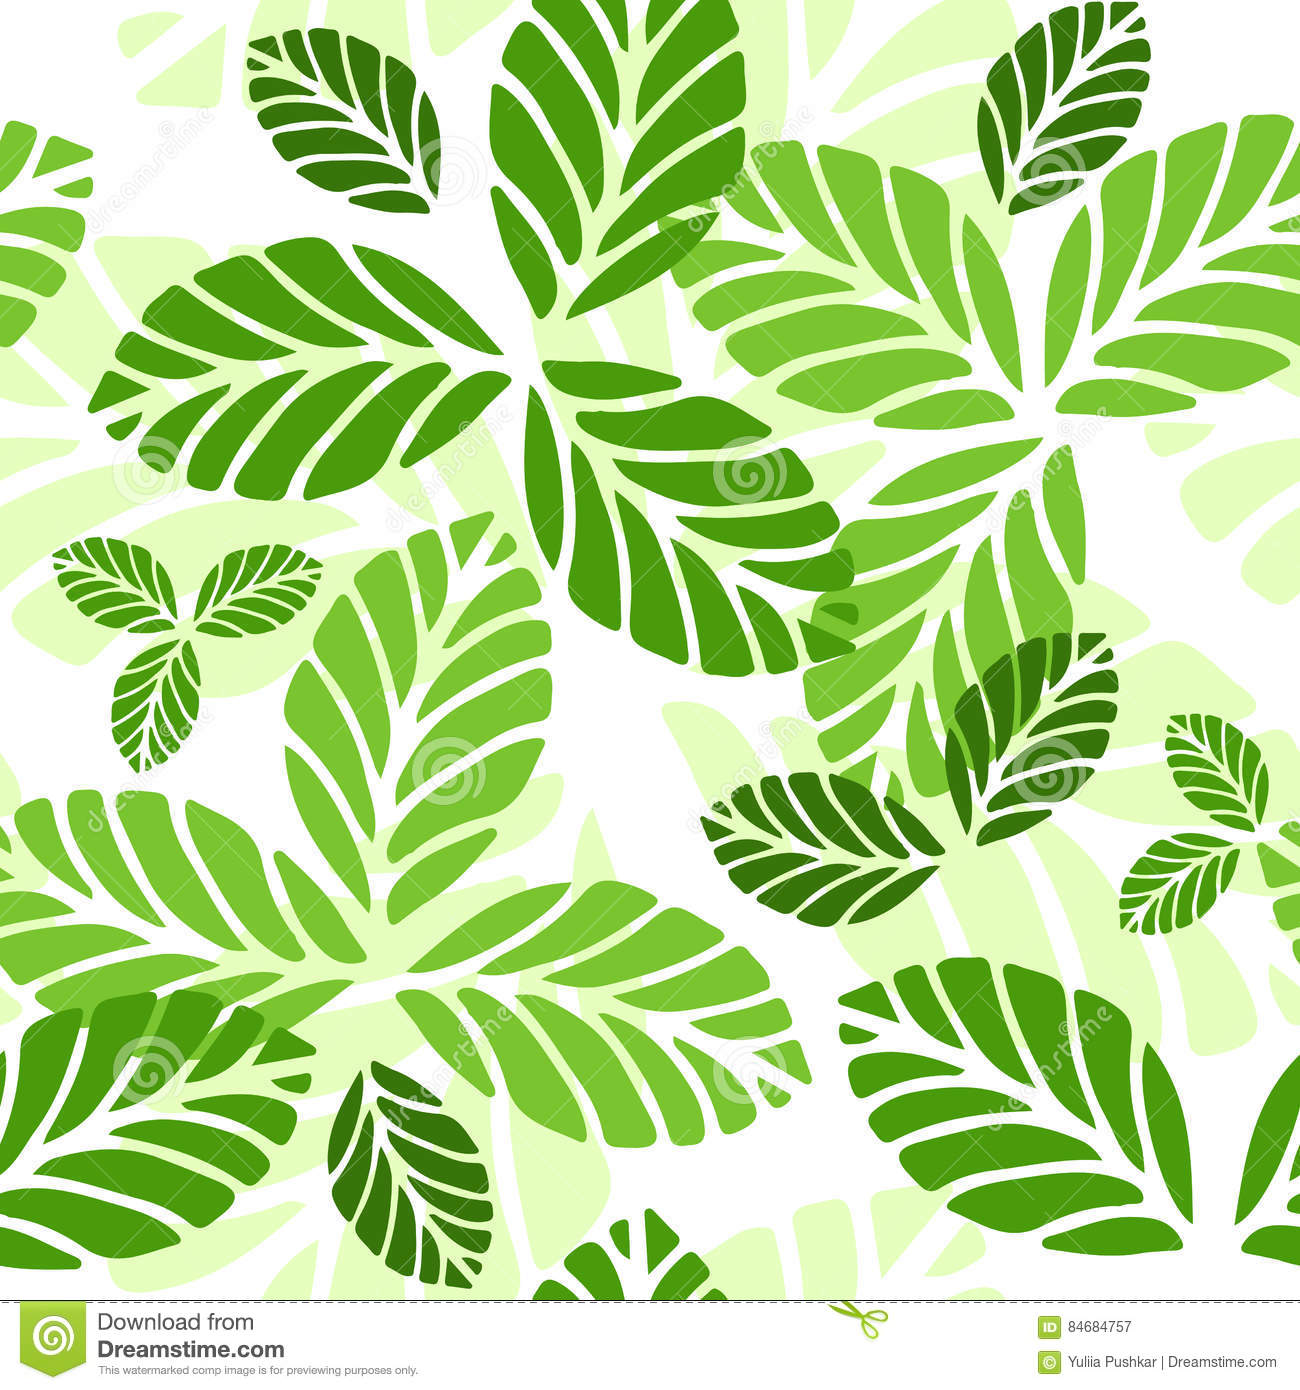 It is a photo of Free Printable Leaves intended for wall